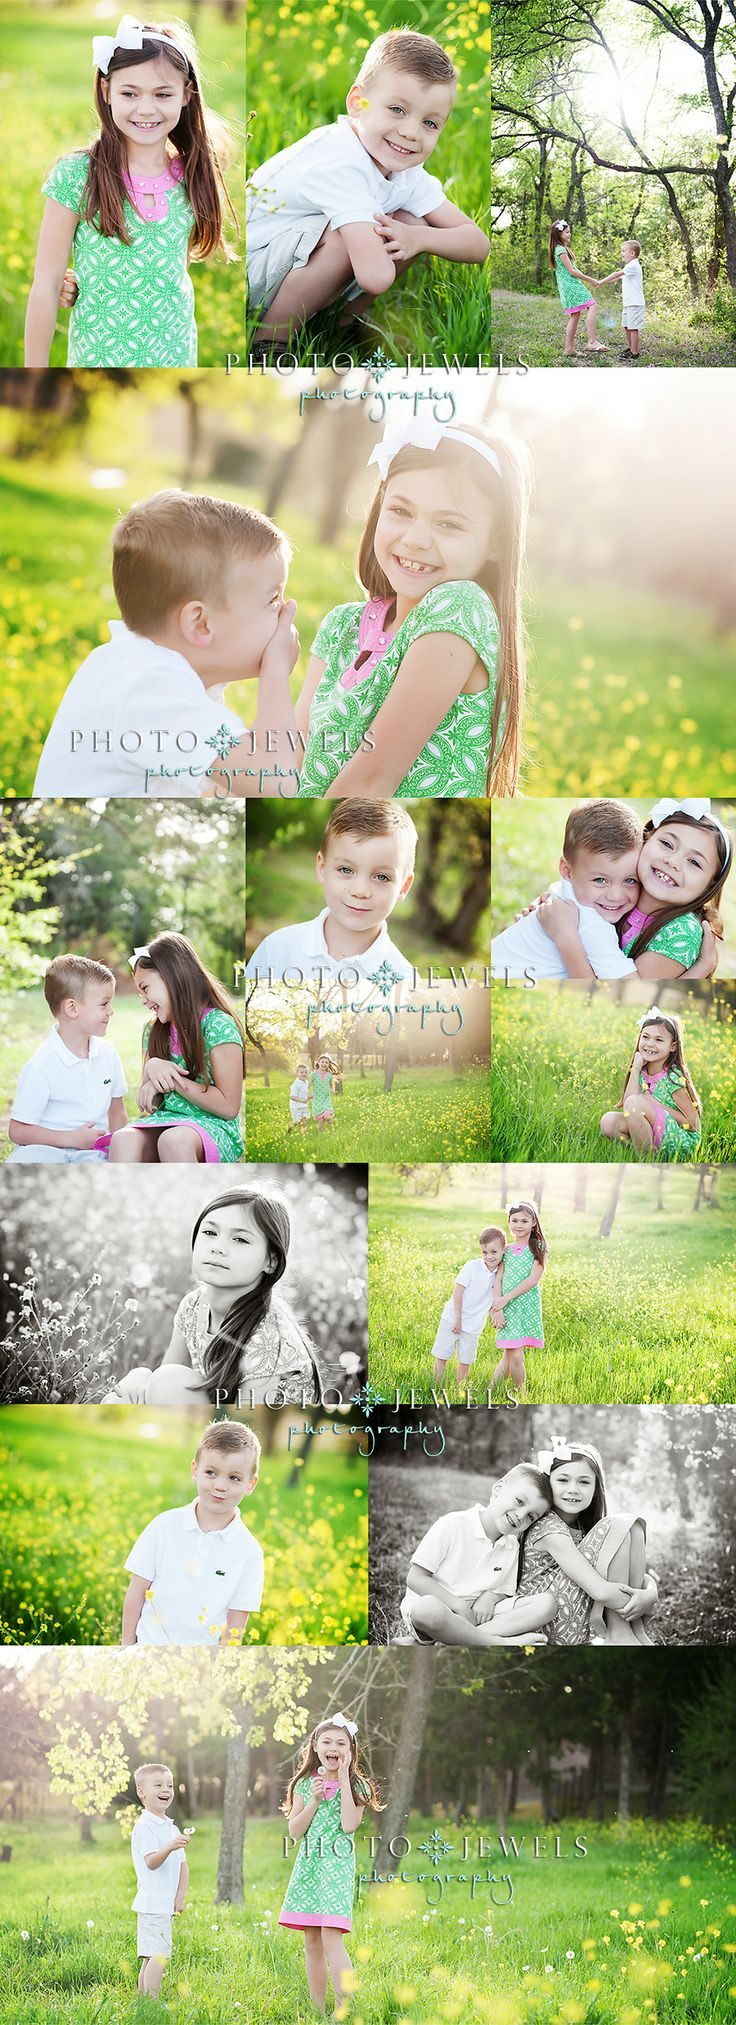 kids outdoor photo shoot, child photo session, child photography, Photo Jewels Photography